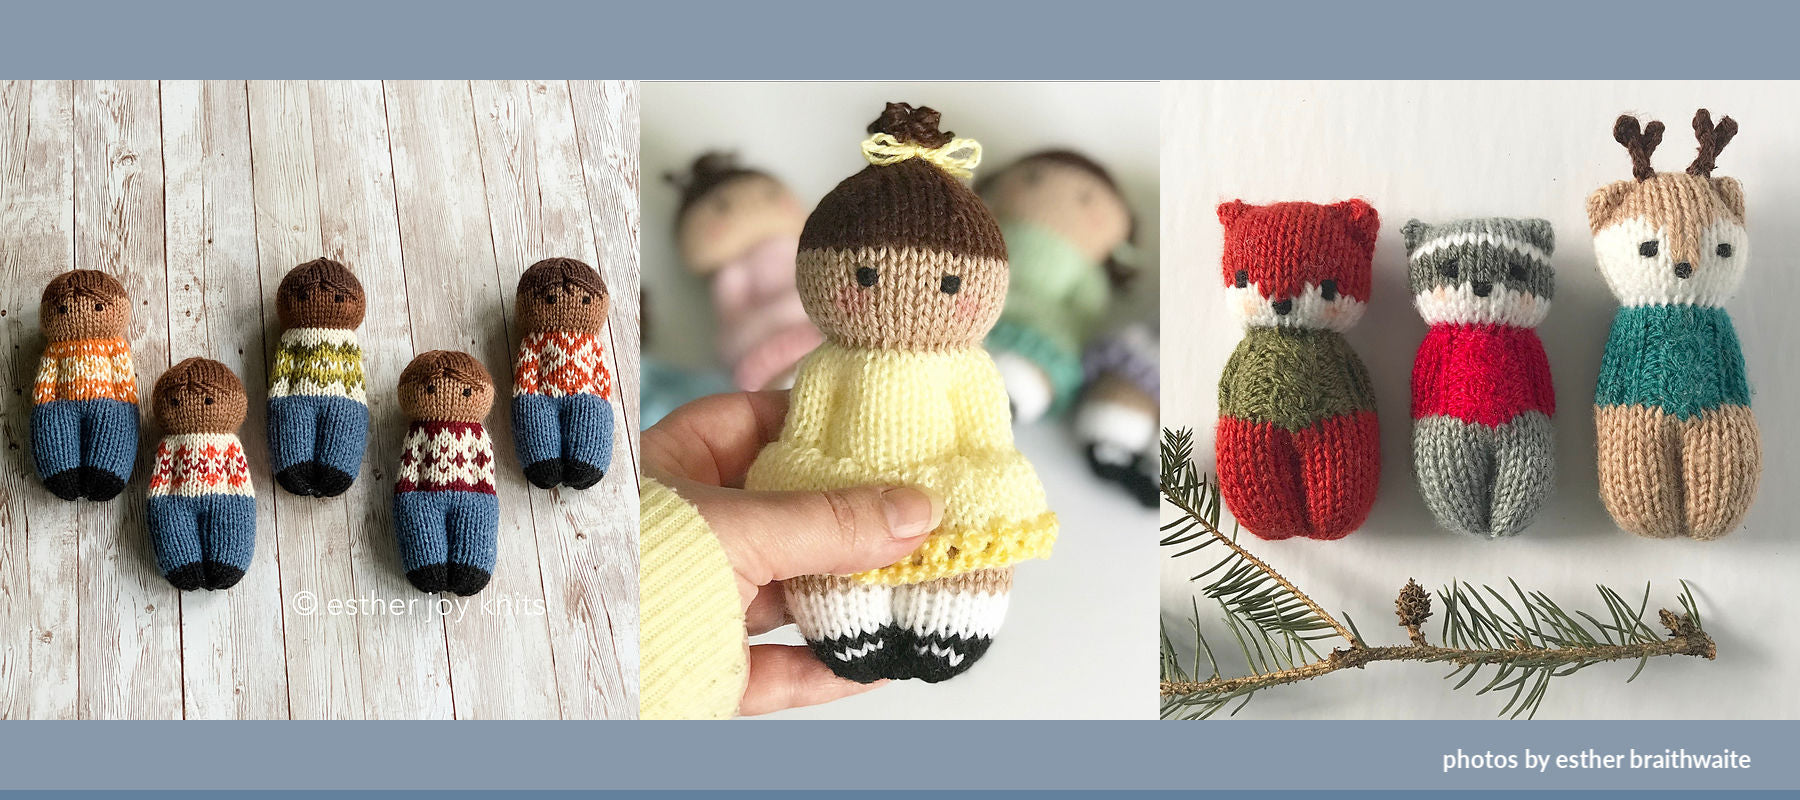 How to Knit Jogless Stripes and Make Izzy Dolls